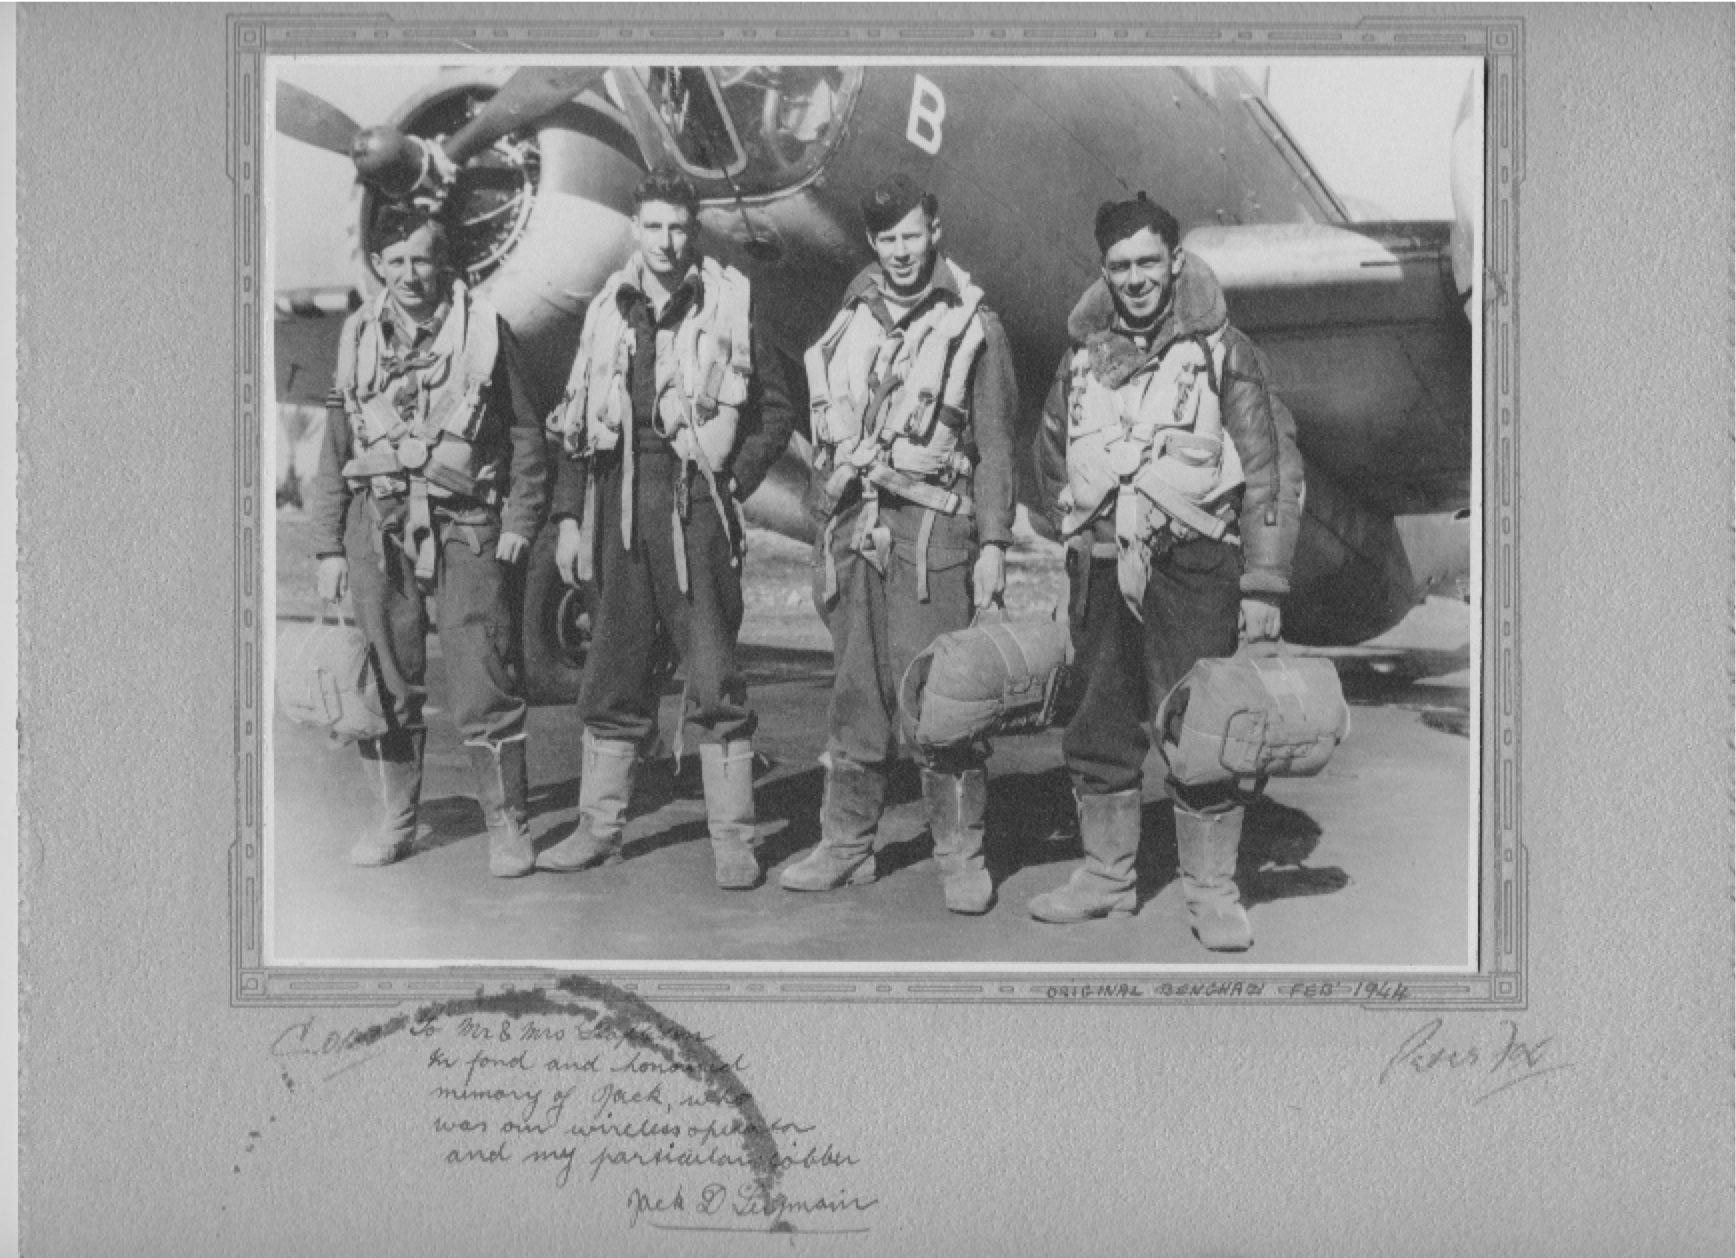 Photo from Jack D Seymour, Flight Crew, Benghazi Feb 1944